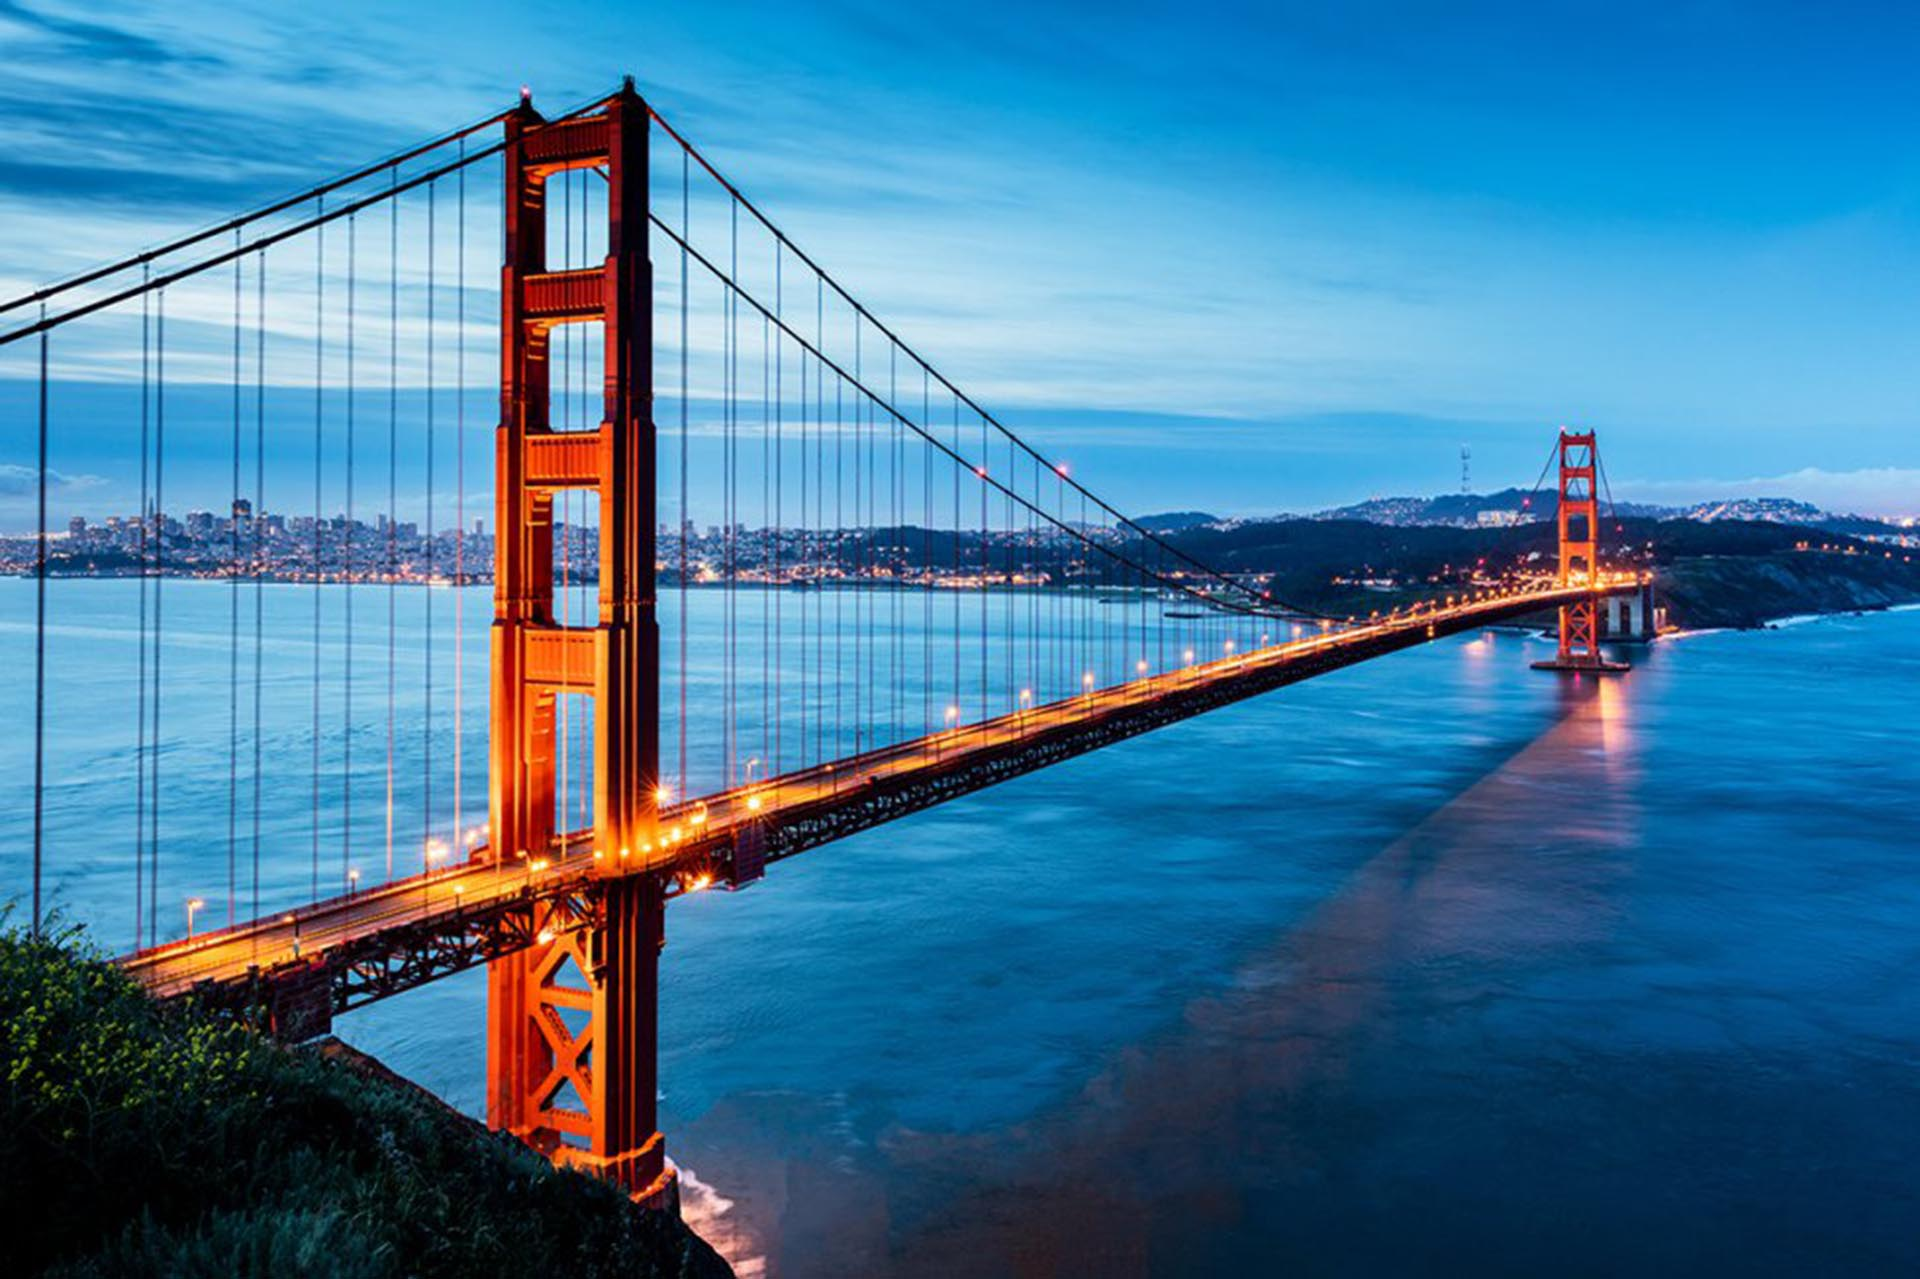 Golden Gate (San Francisco, Estados Unidos)